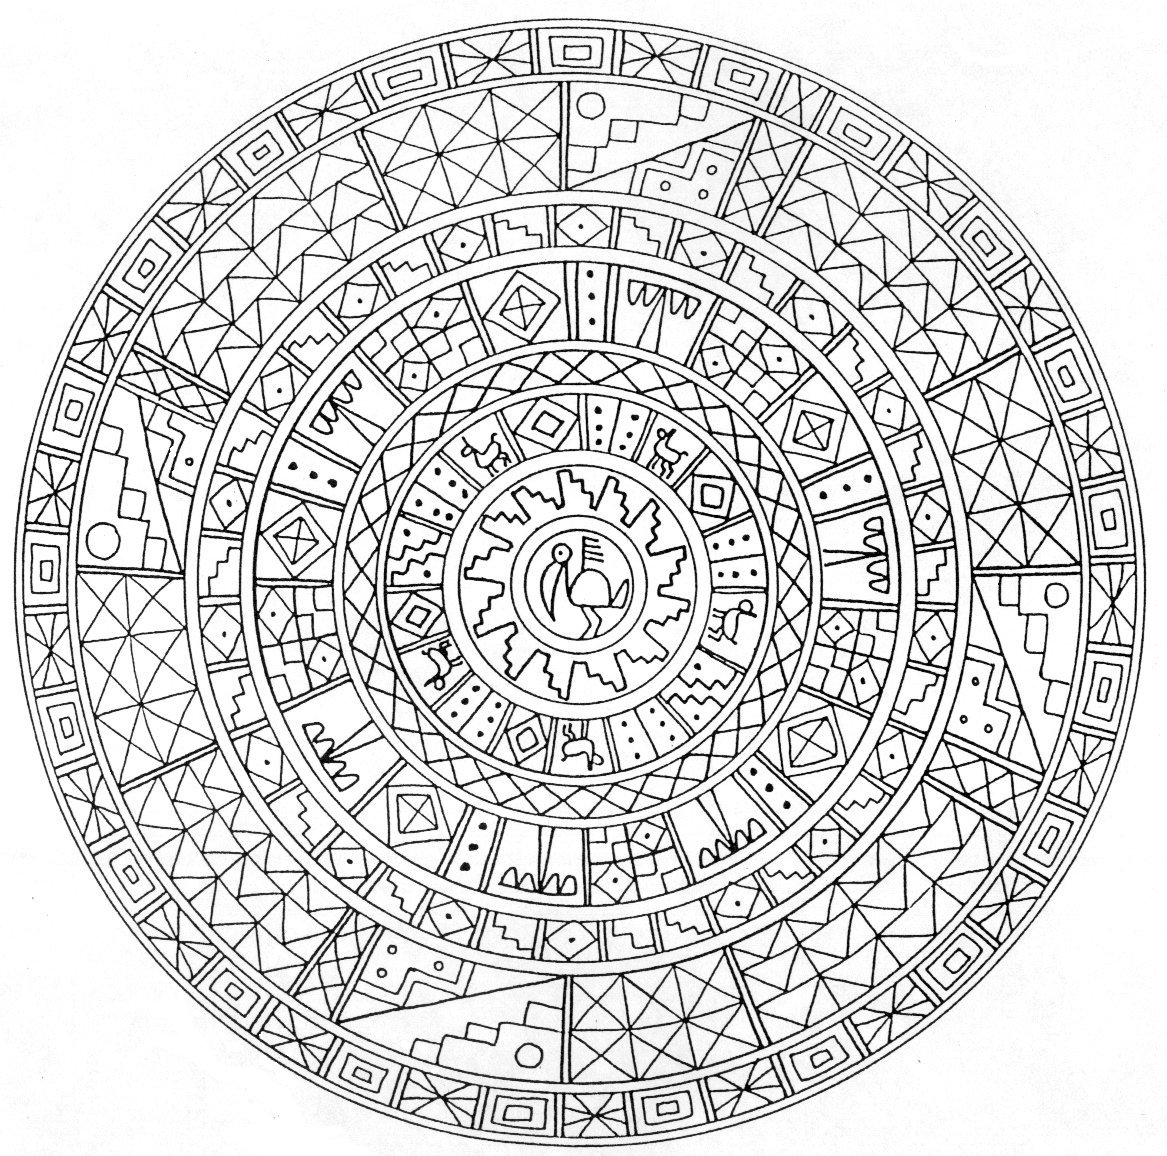 mandalas coloring pages mandala coloring pages for kids to download and print for free coloring pages mandalas